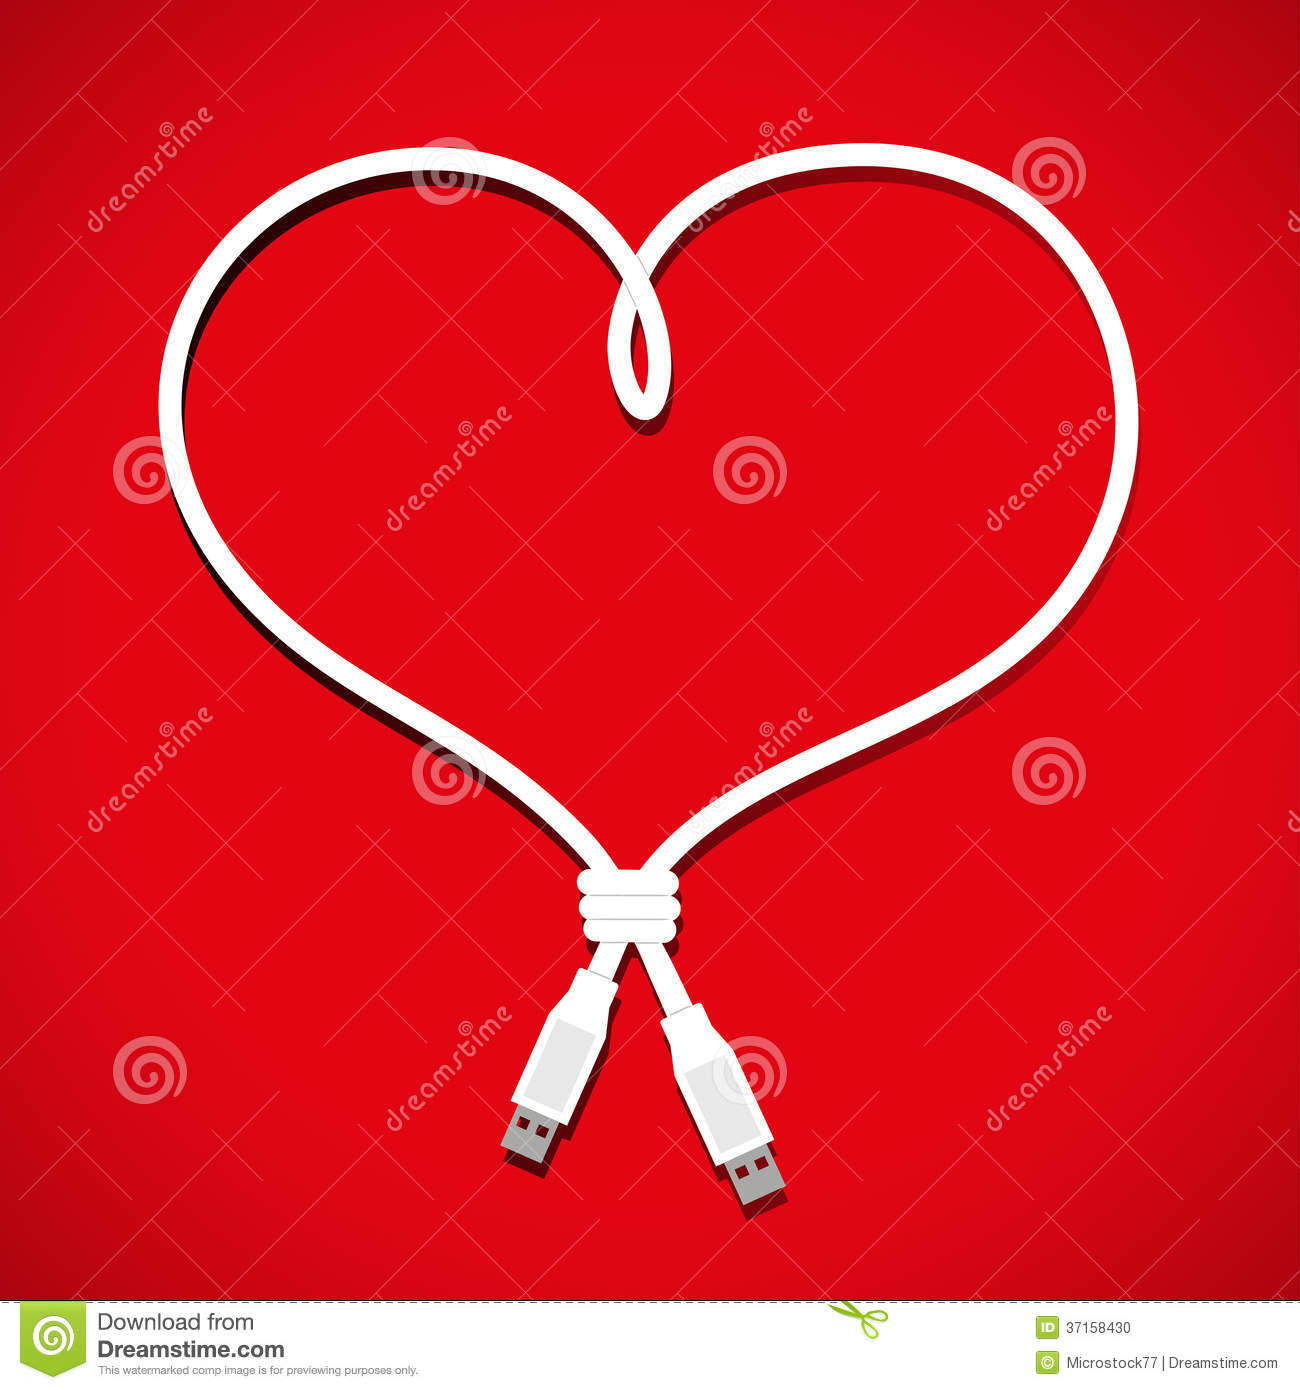 Usb cable heart